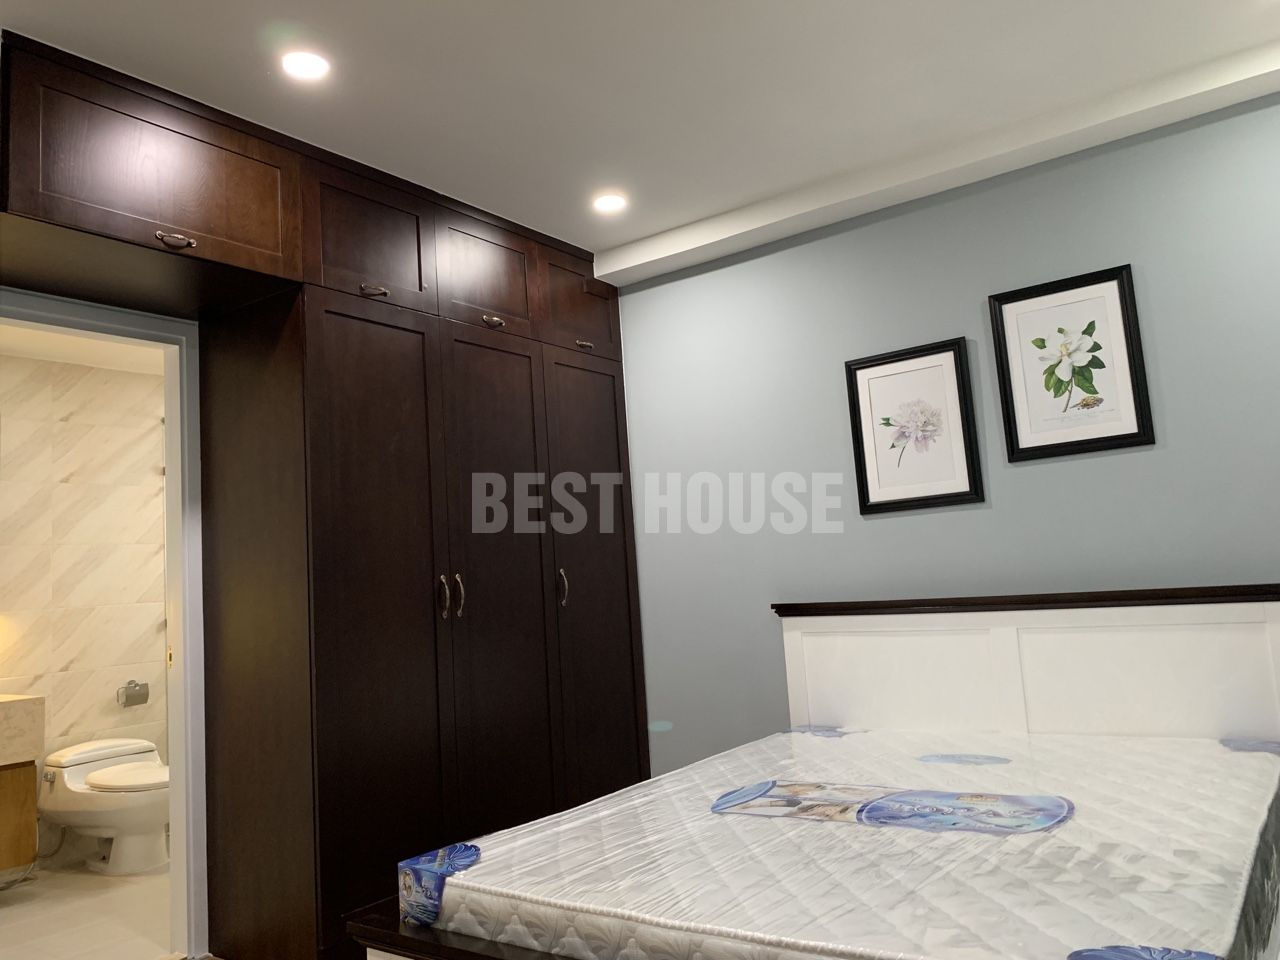 green-valley-apartment-for-rent-in-phu-my-hung-district-7-hcmc-3